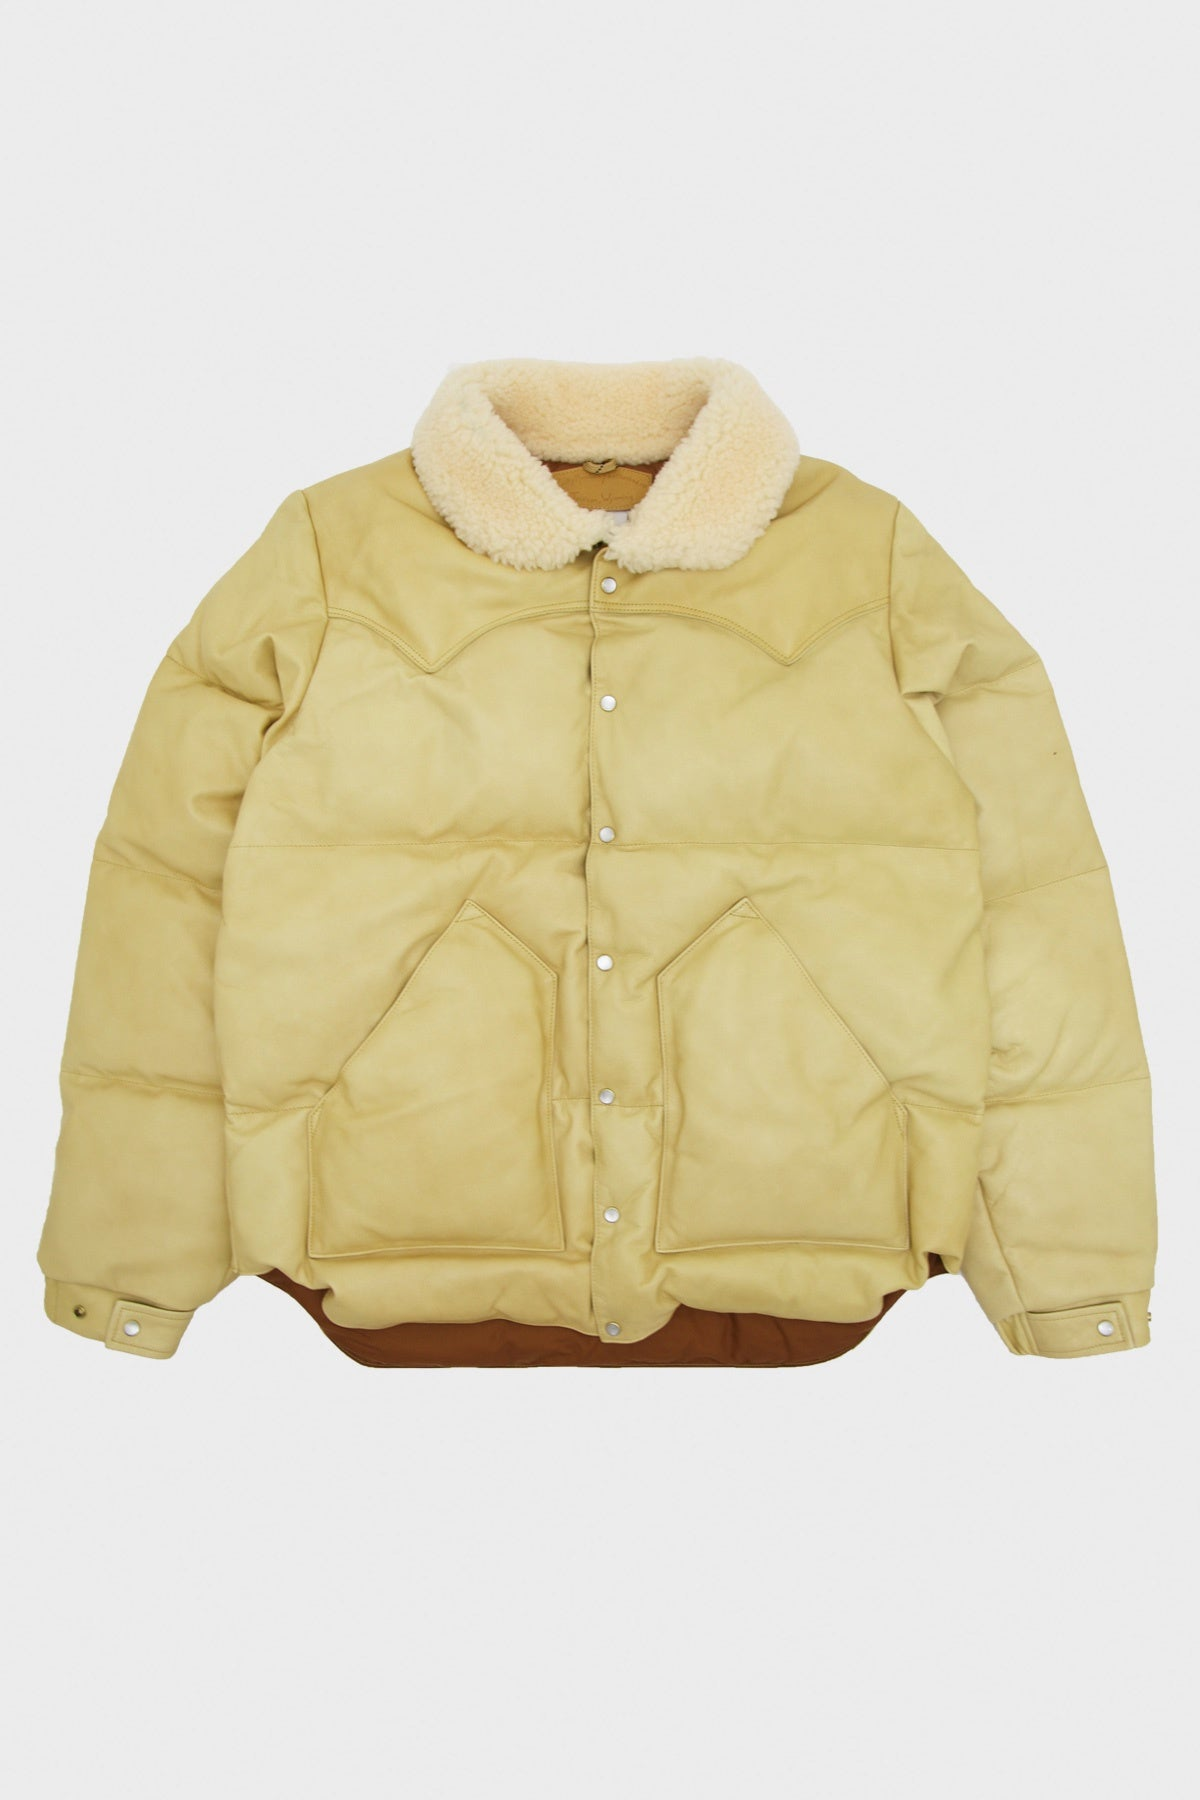 Rocky Mountain Featherbed - Leather Christy Jacket - Yellow Suede - Canoe Club